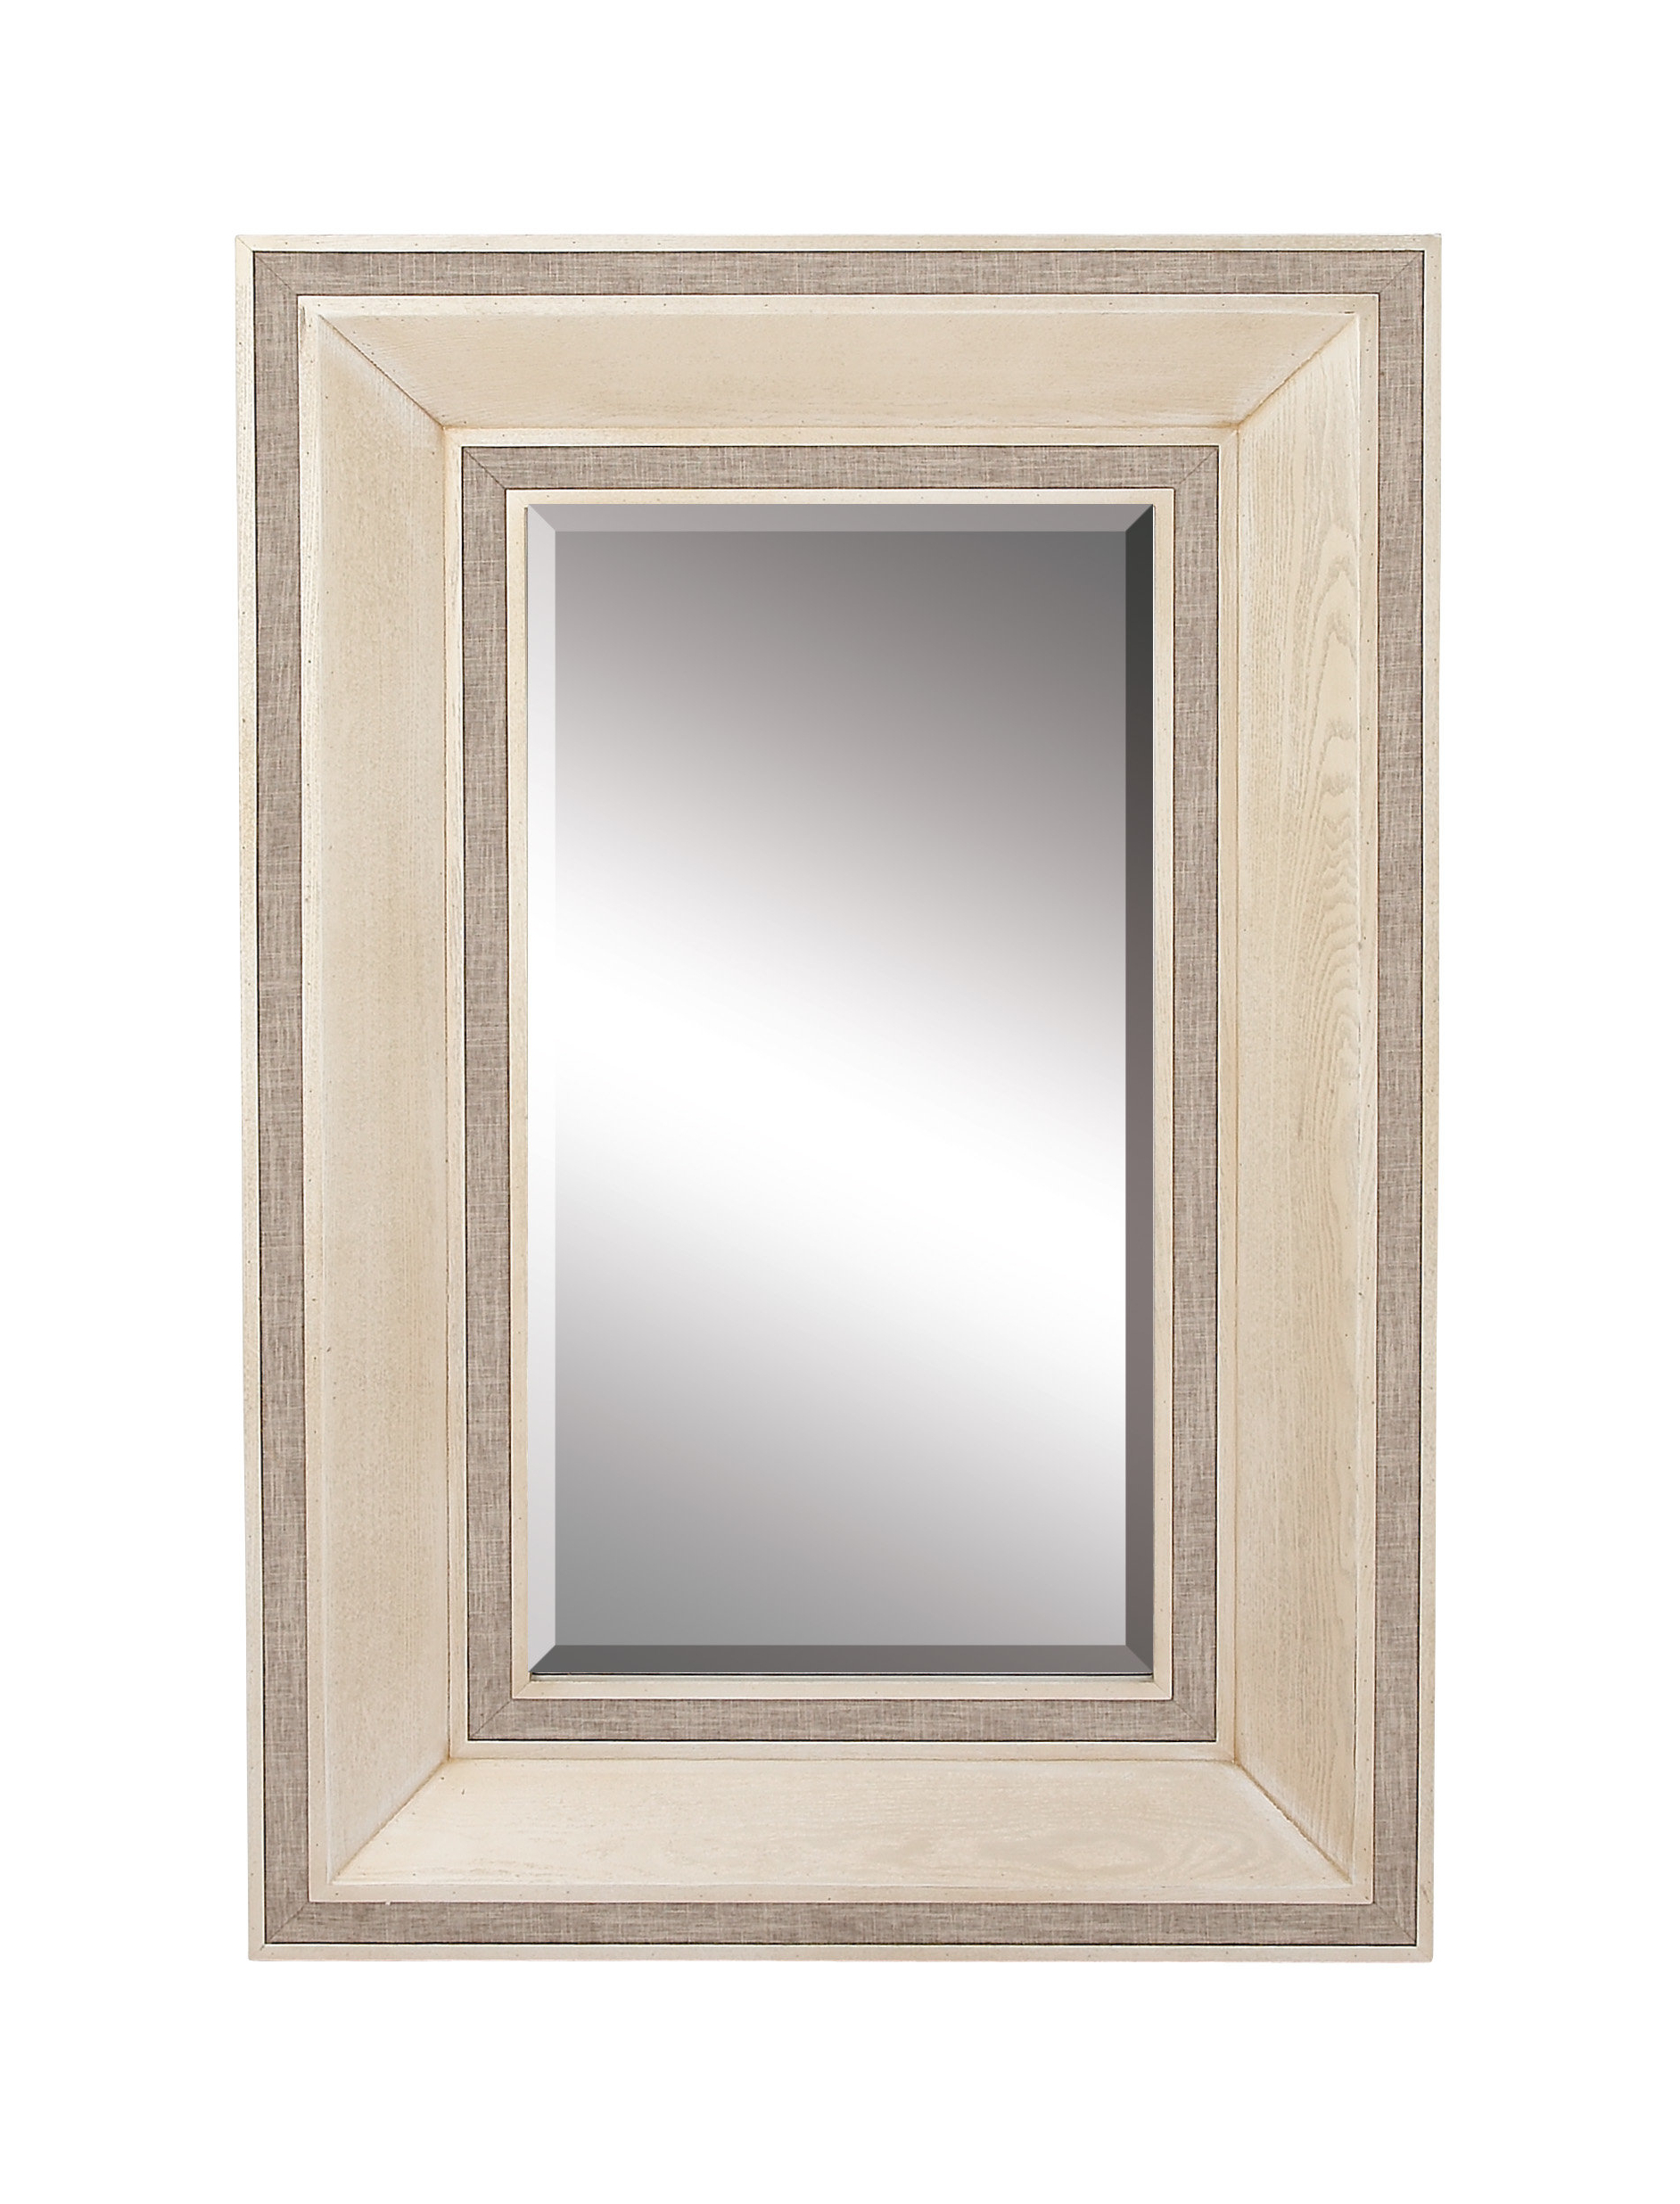 Fashionable Wood Frame Wall Mirror Intended For Wood Framed Wall Mirrors (View 16 of 20)